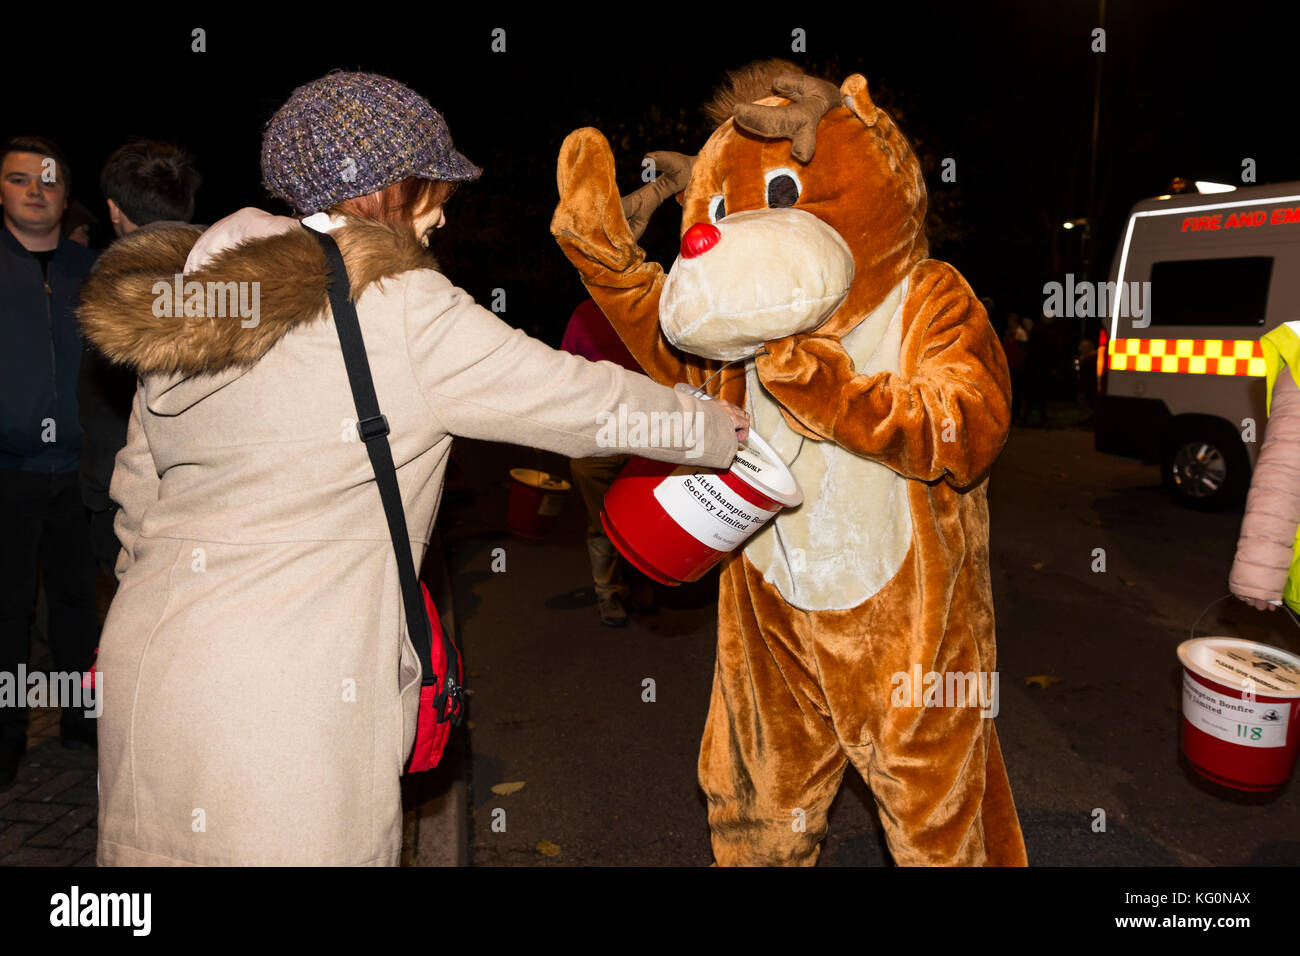 A woman making a donation by putting money in charity collection box at a fancy dress procession in the UK. - Stock Image